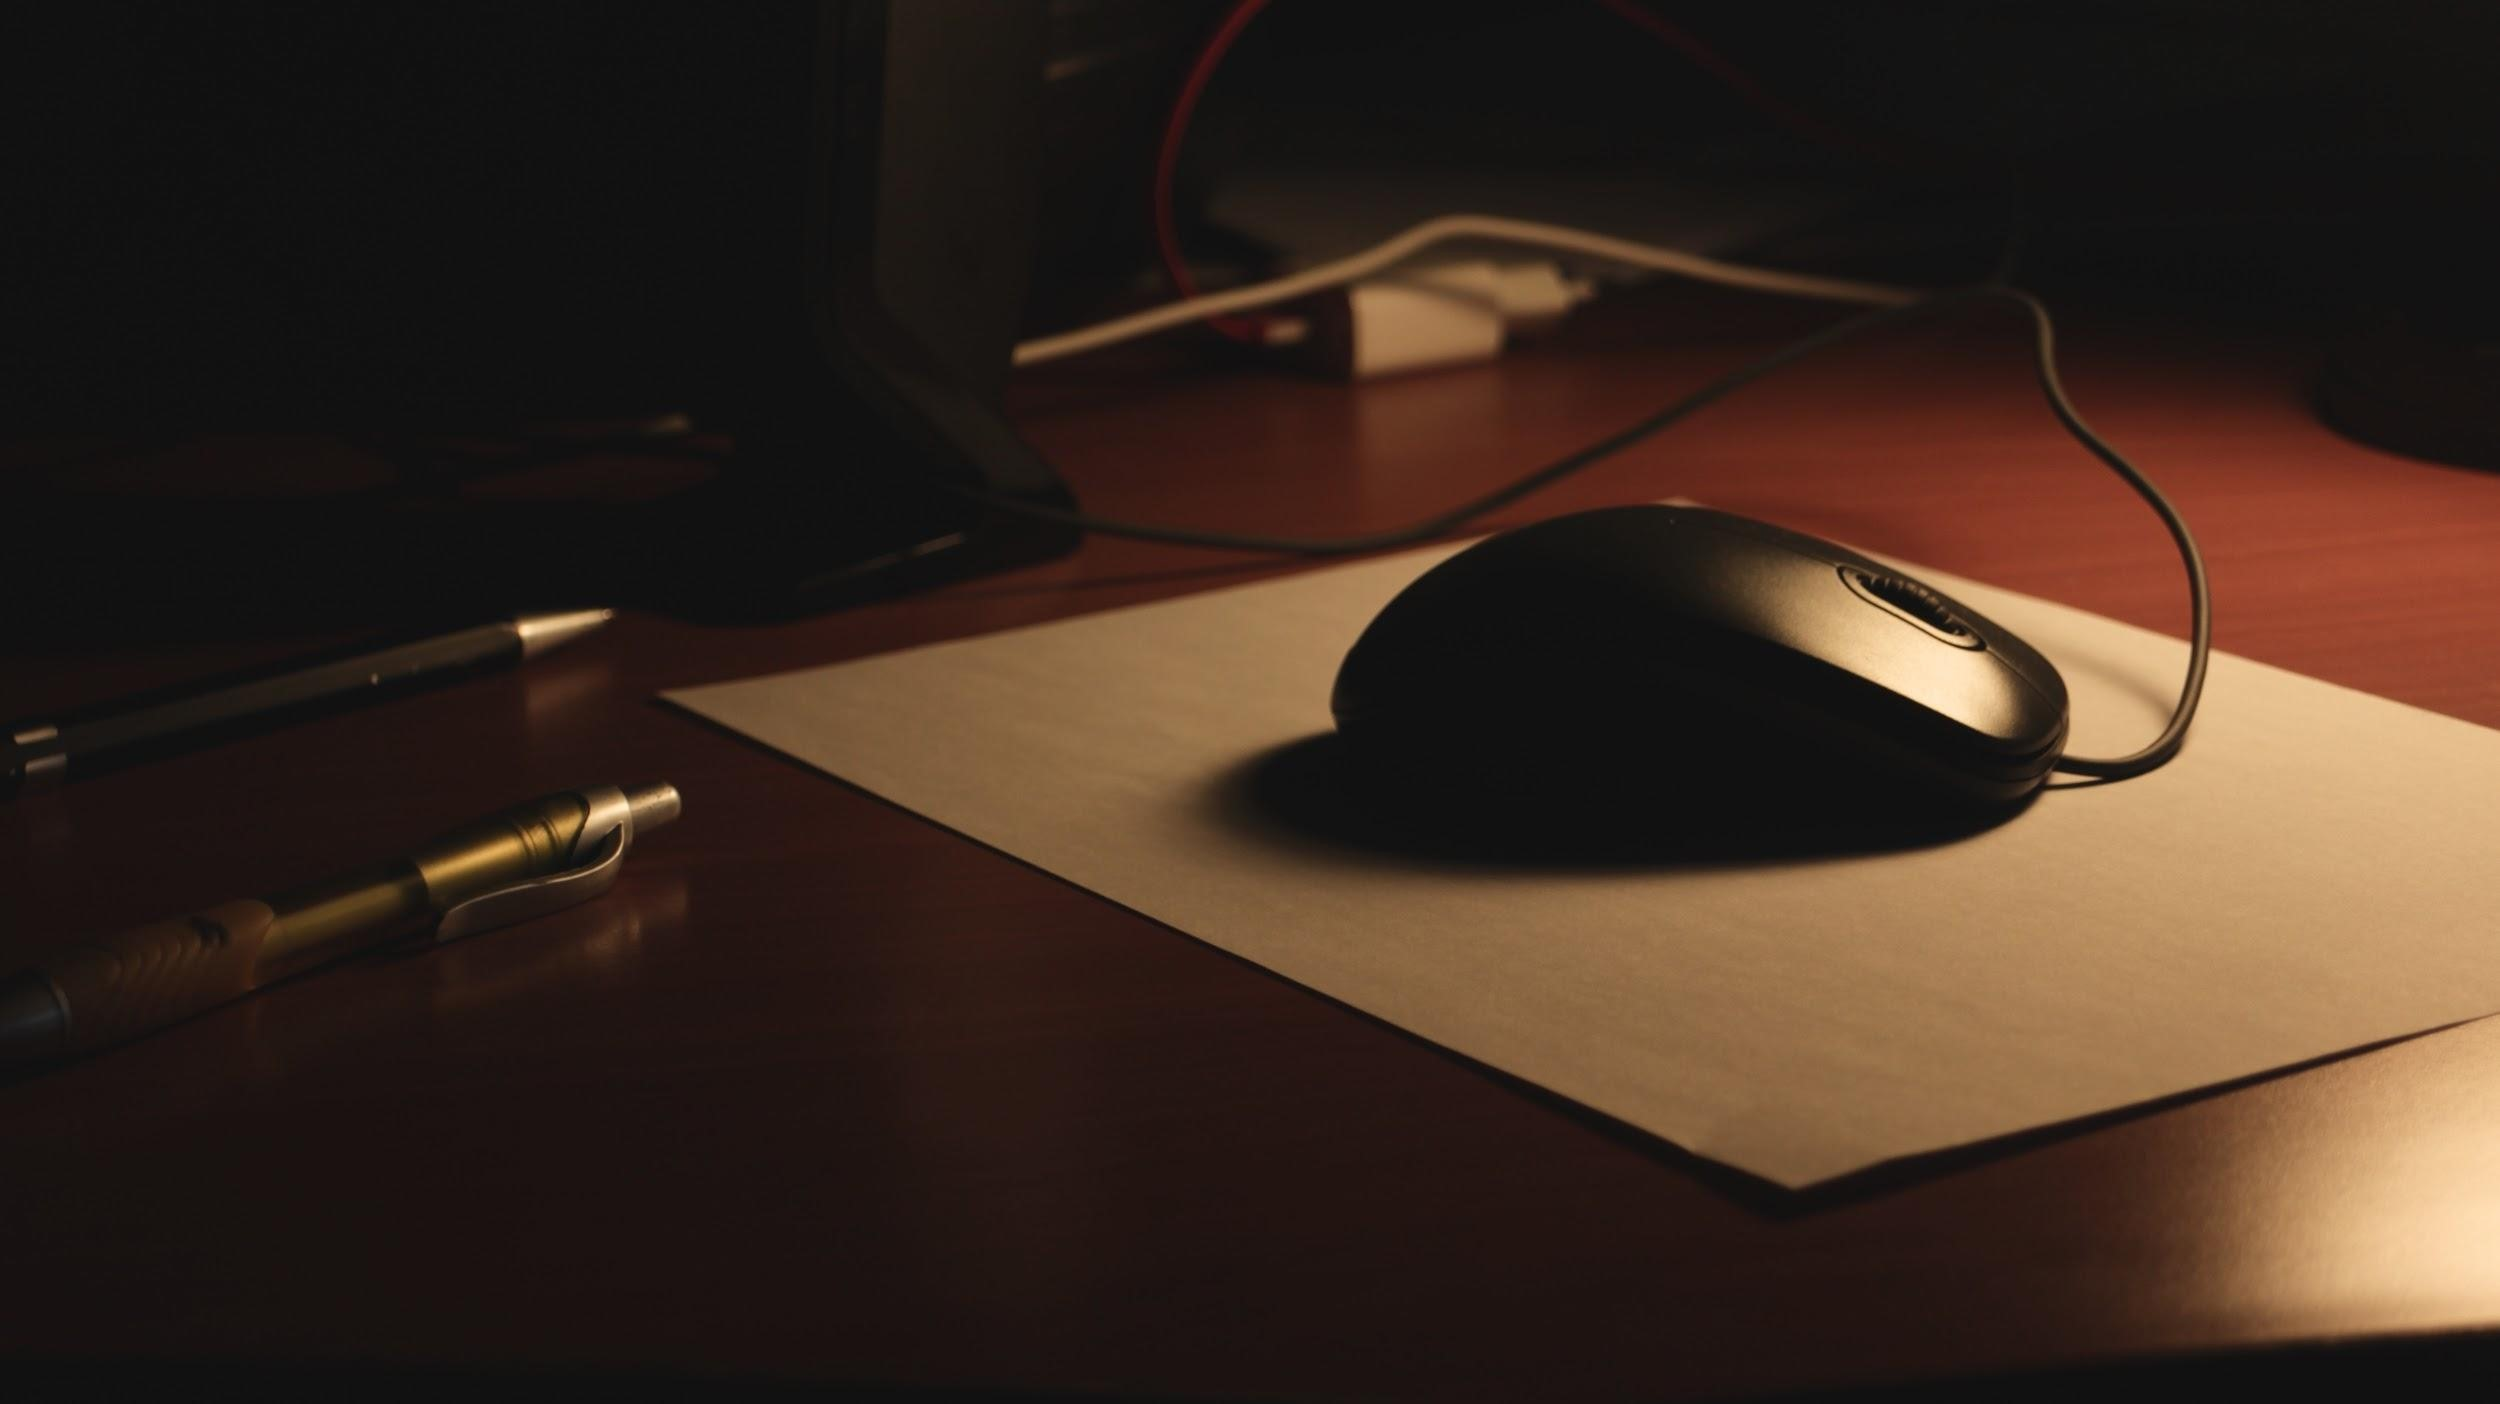 pens and mouse on a desk